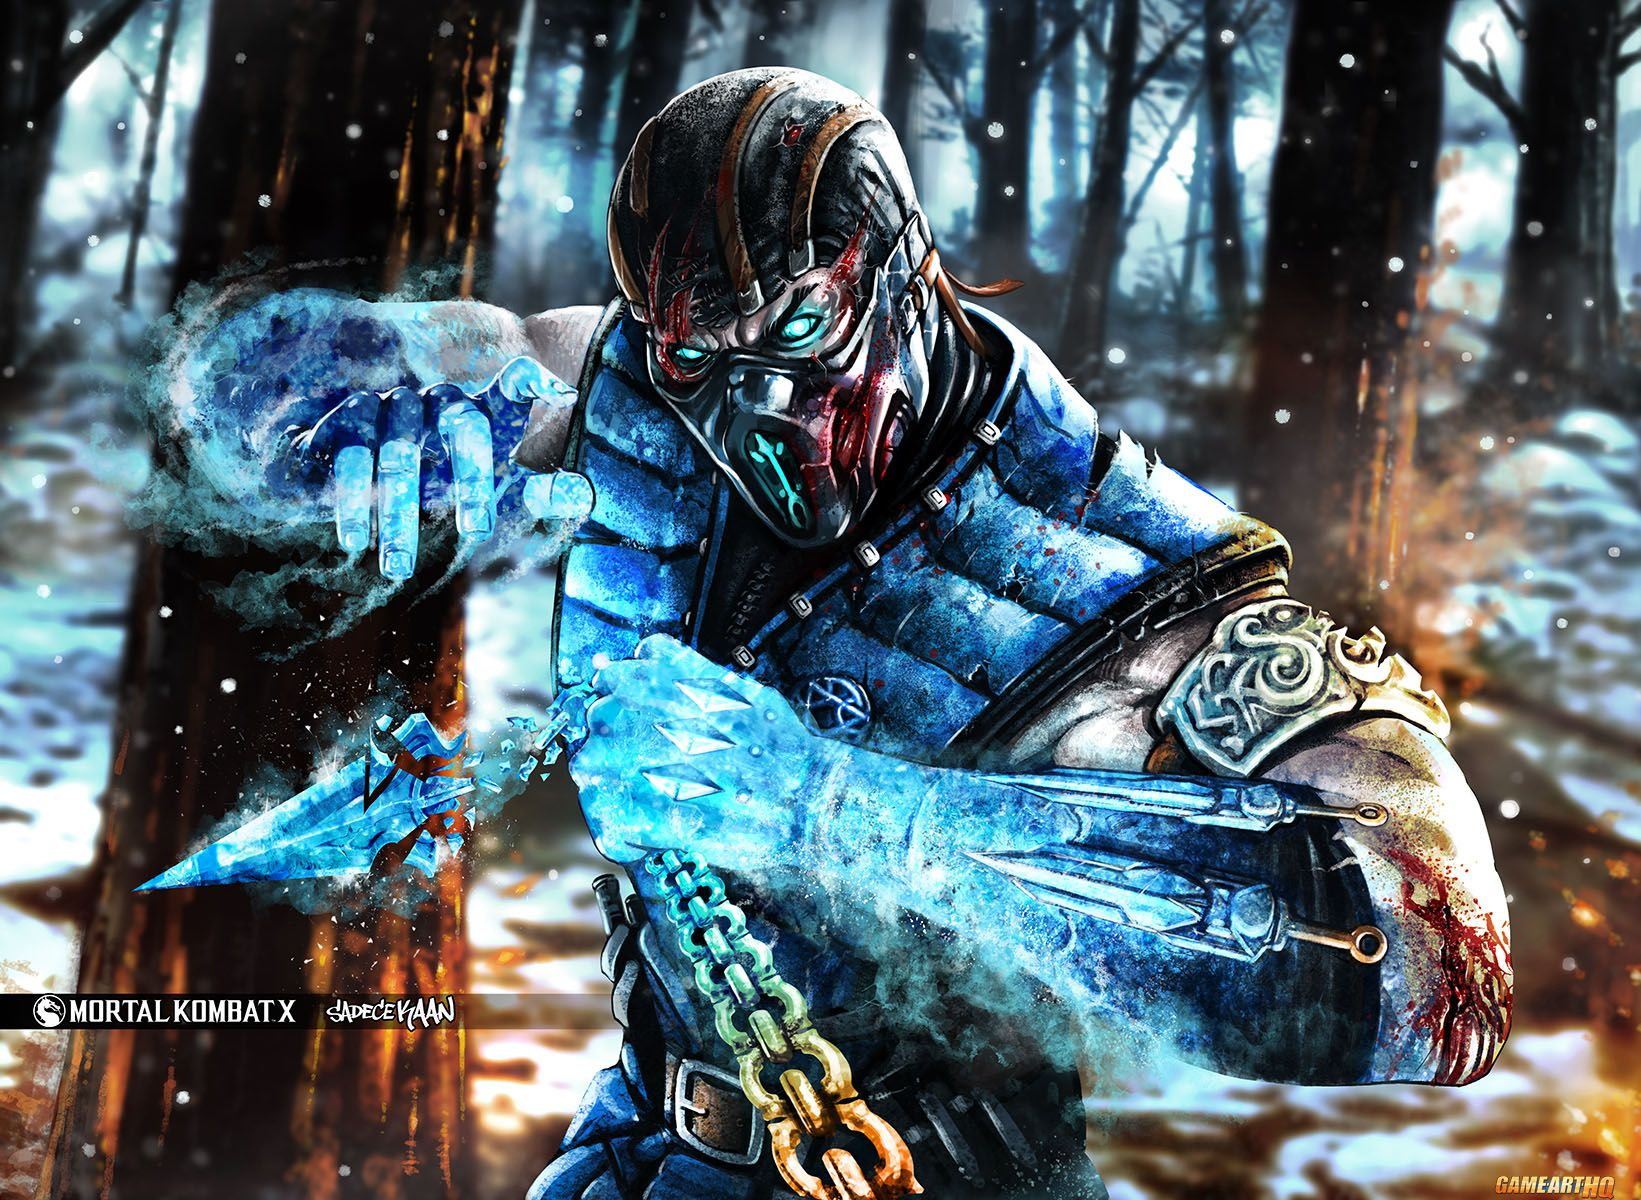 Mortal Kombat X Wallpaper Subzero Fanart Sadecekaan From Turkey